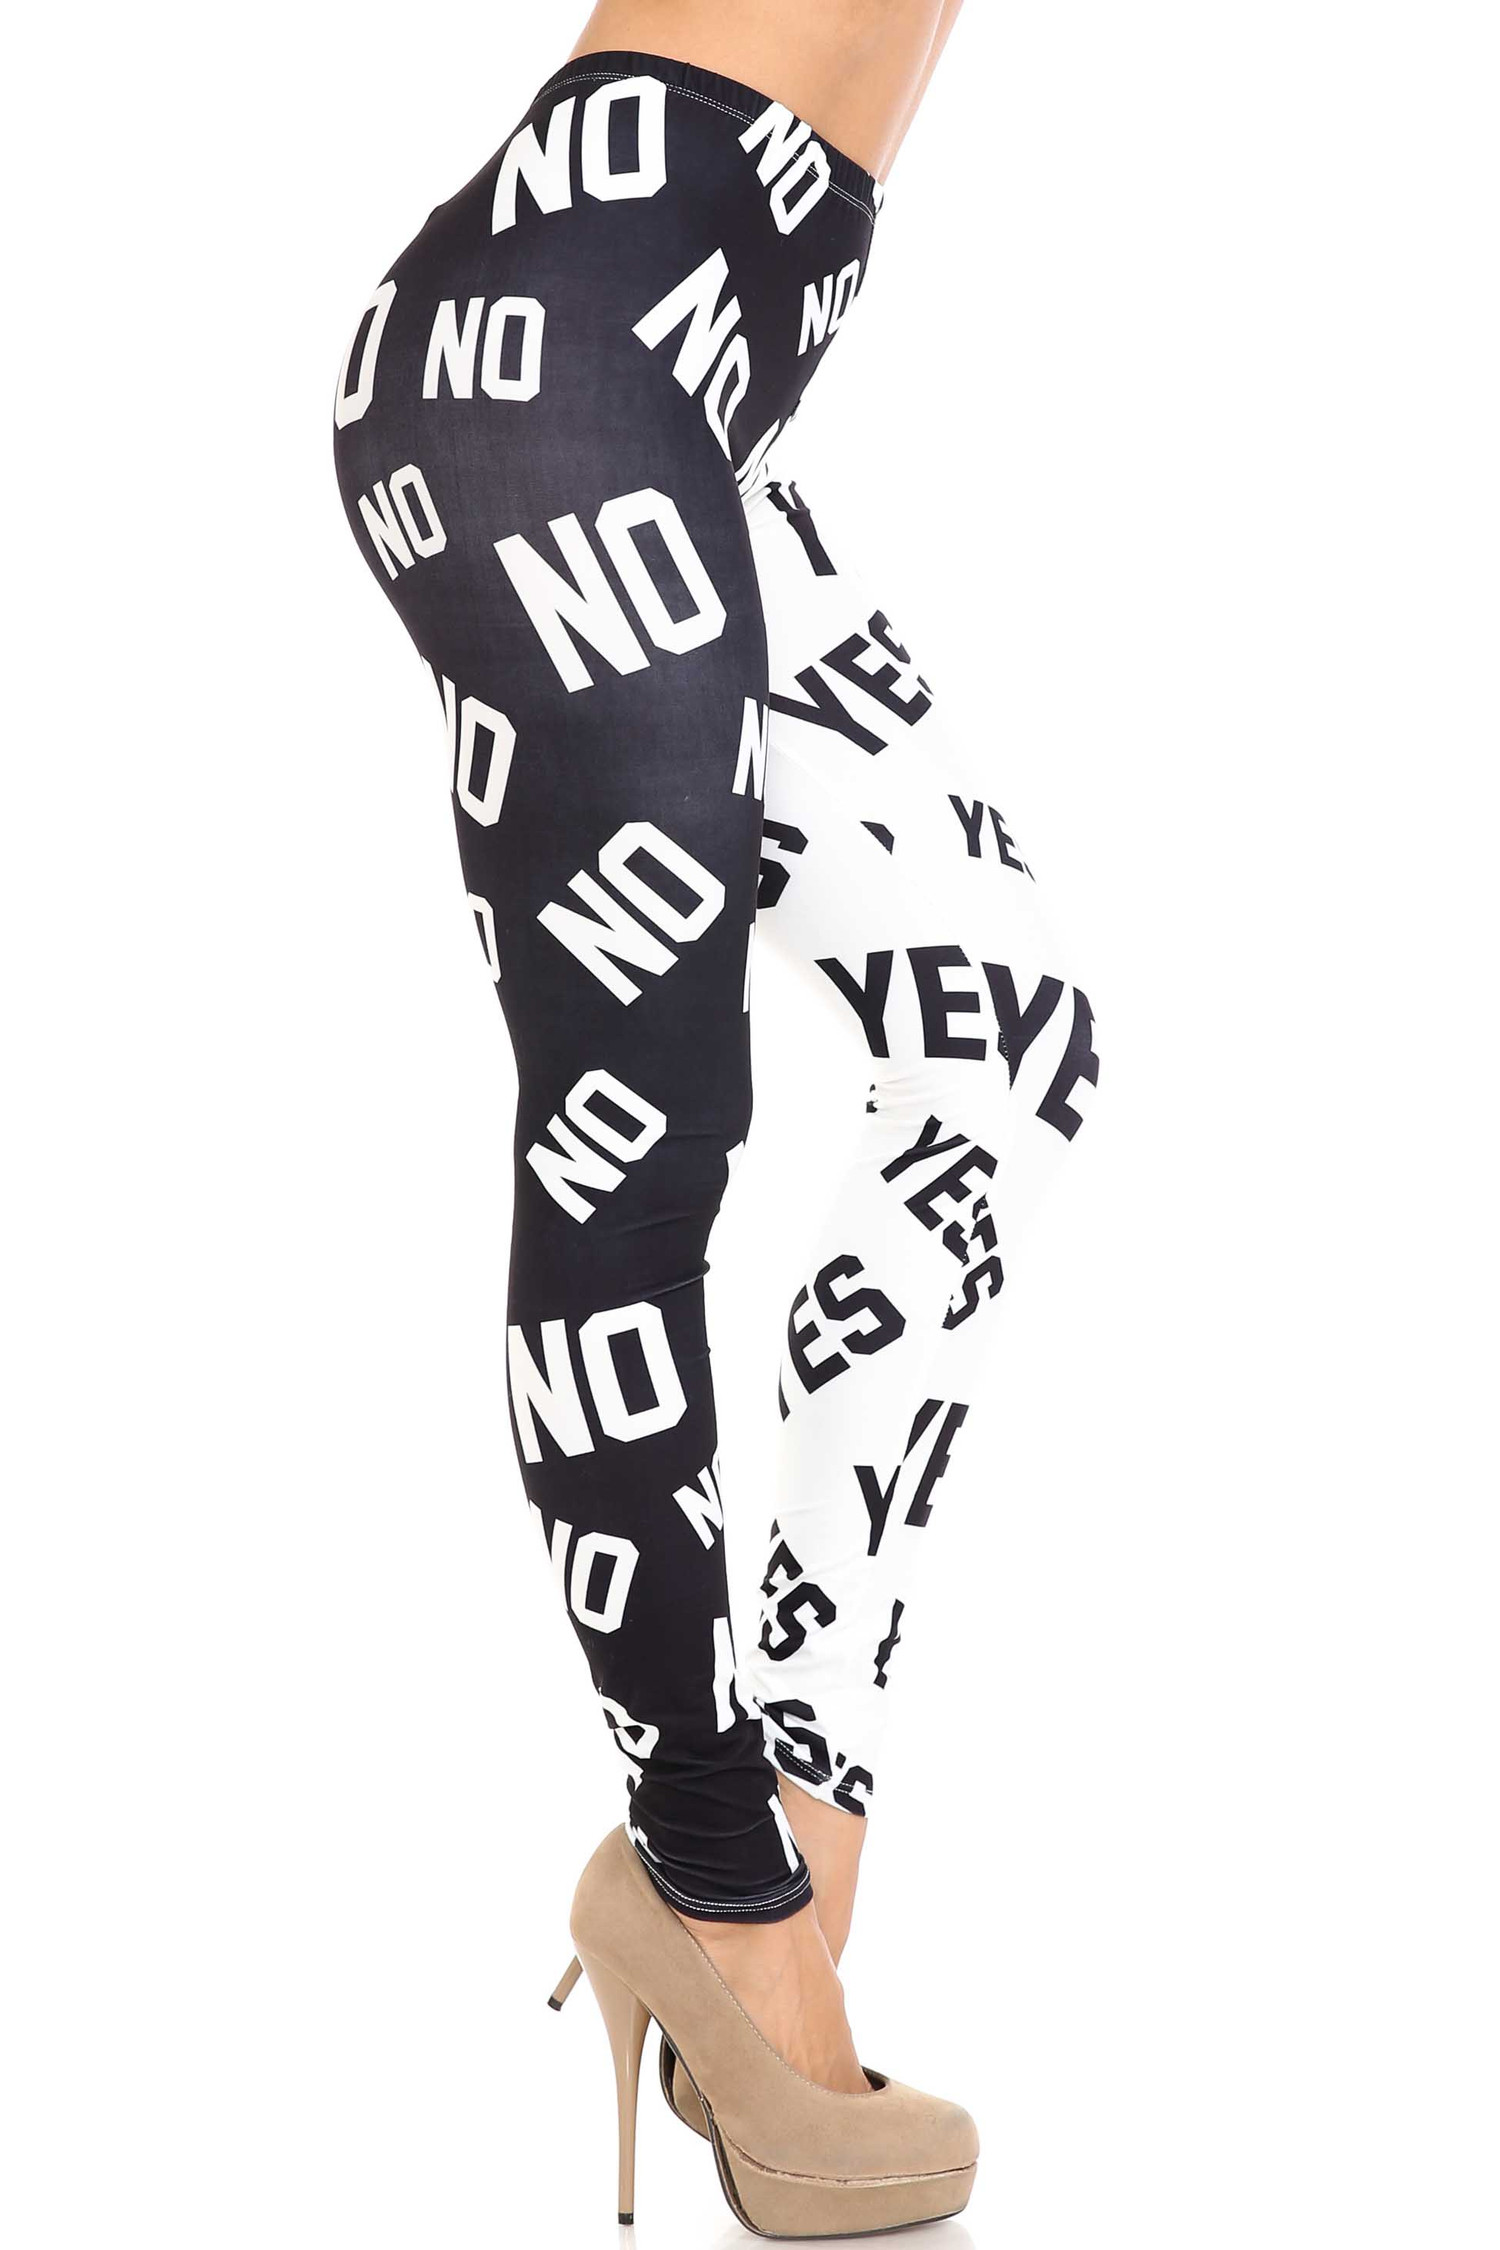 Creamy Soft Yes and No Plus Size Leggings - By USA Fashion™